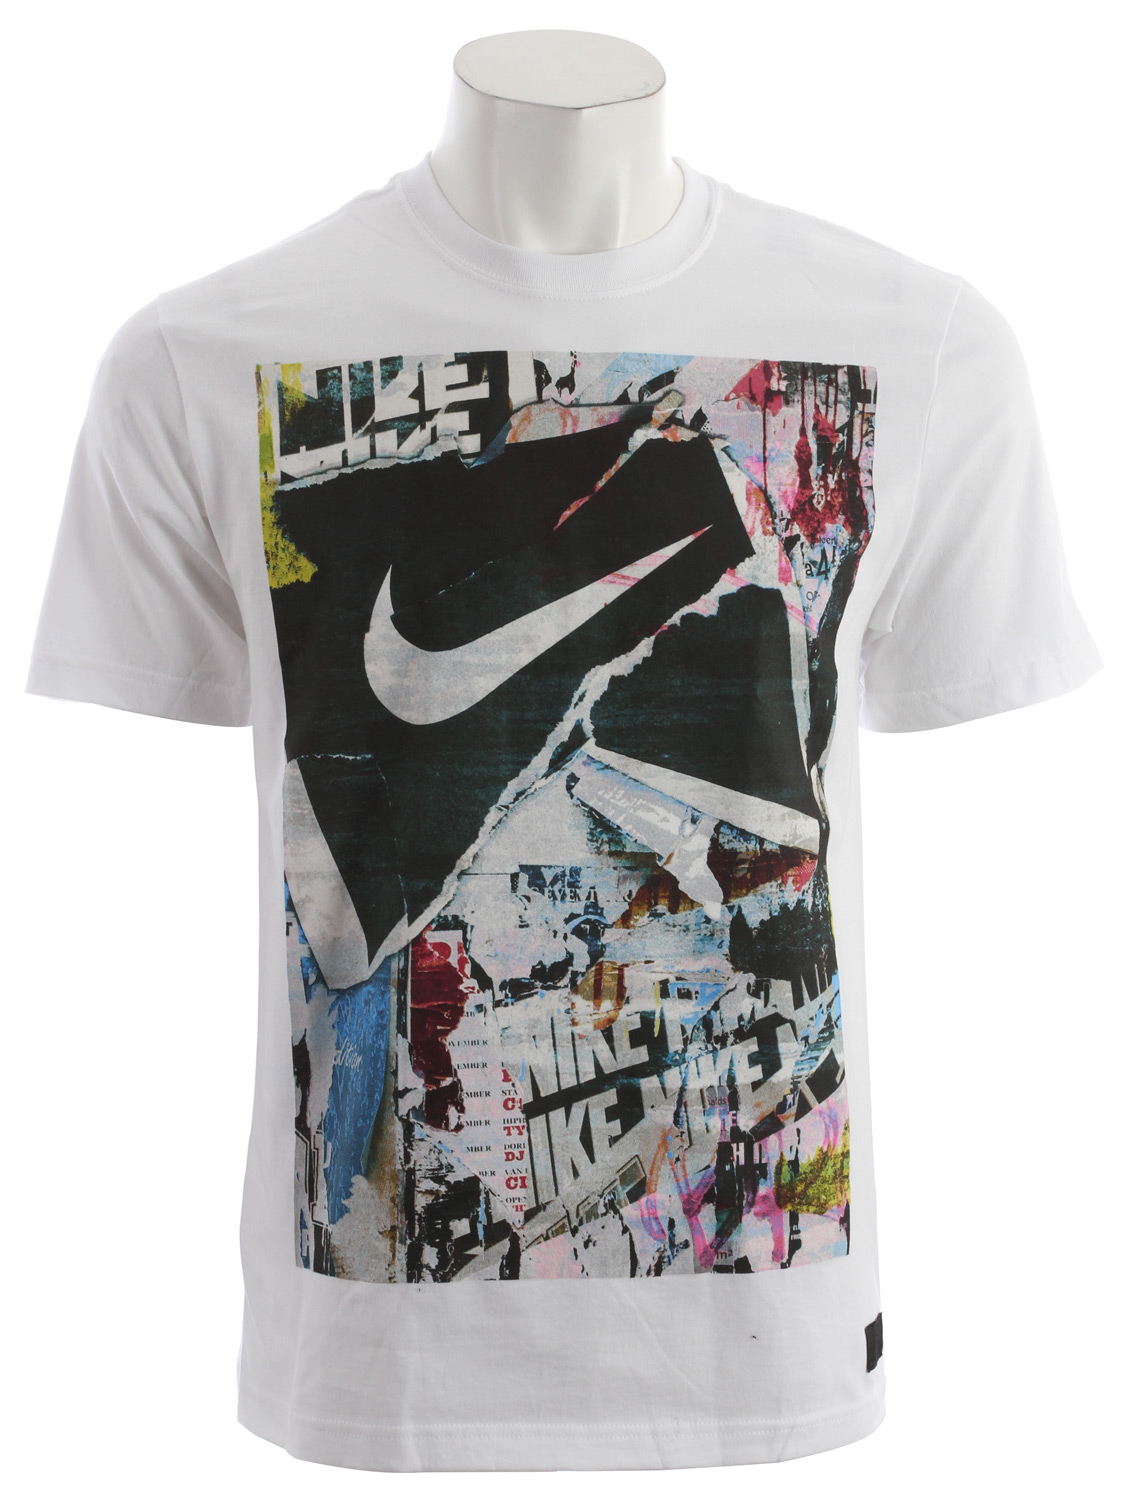 Skateboard Key Features of the Nike Torn Up Ribbon T-Shirt: All-purpose cotton tee graphic executed with a soft hand screen print. Body: 175g. 100% cotton (10% organic) plain jersey. Rib: 250g. 100% cotton (10% organic). - $25.00